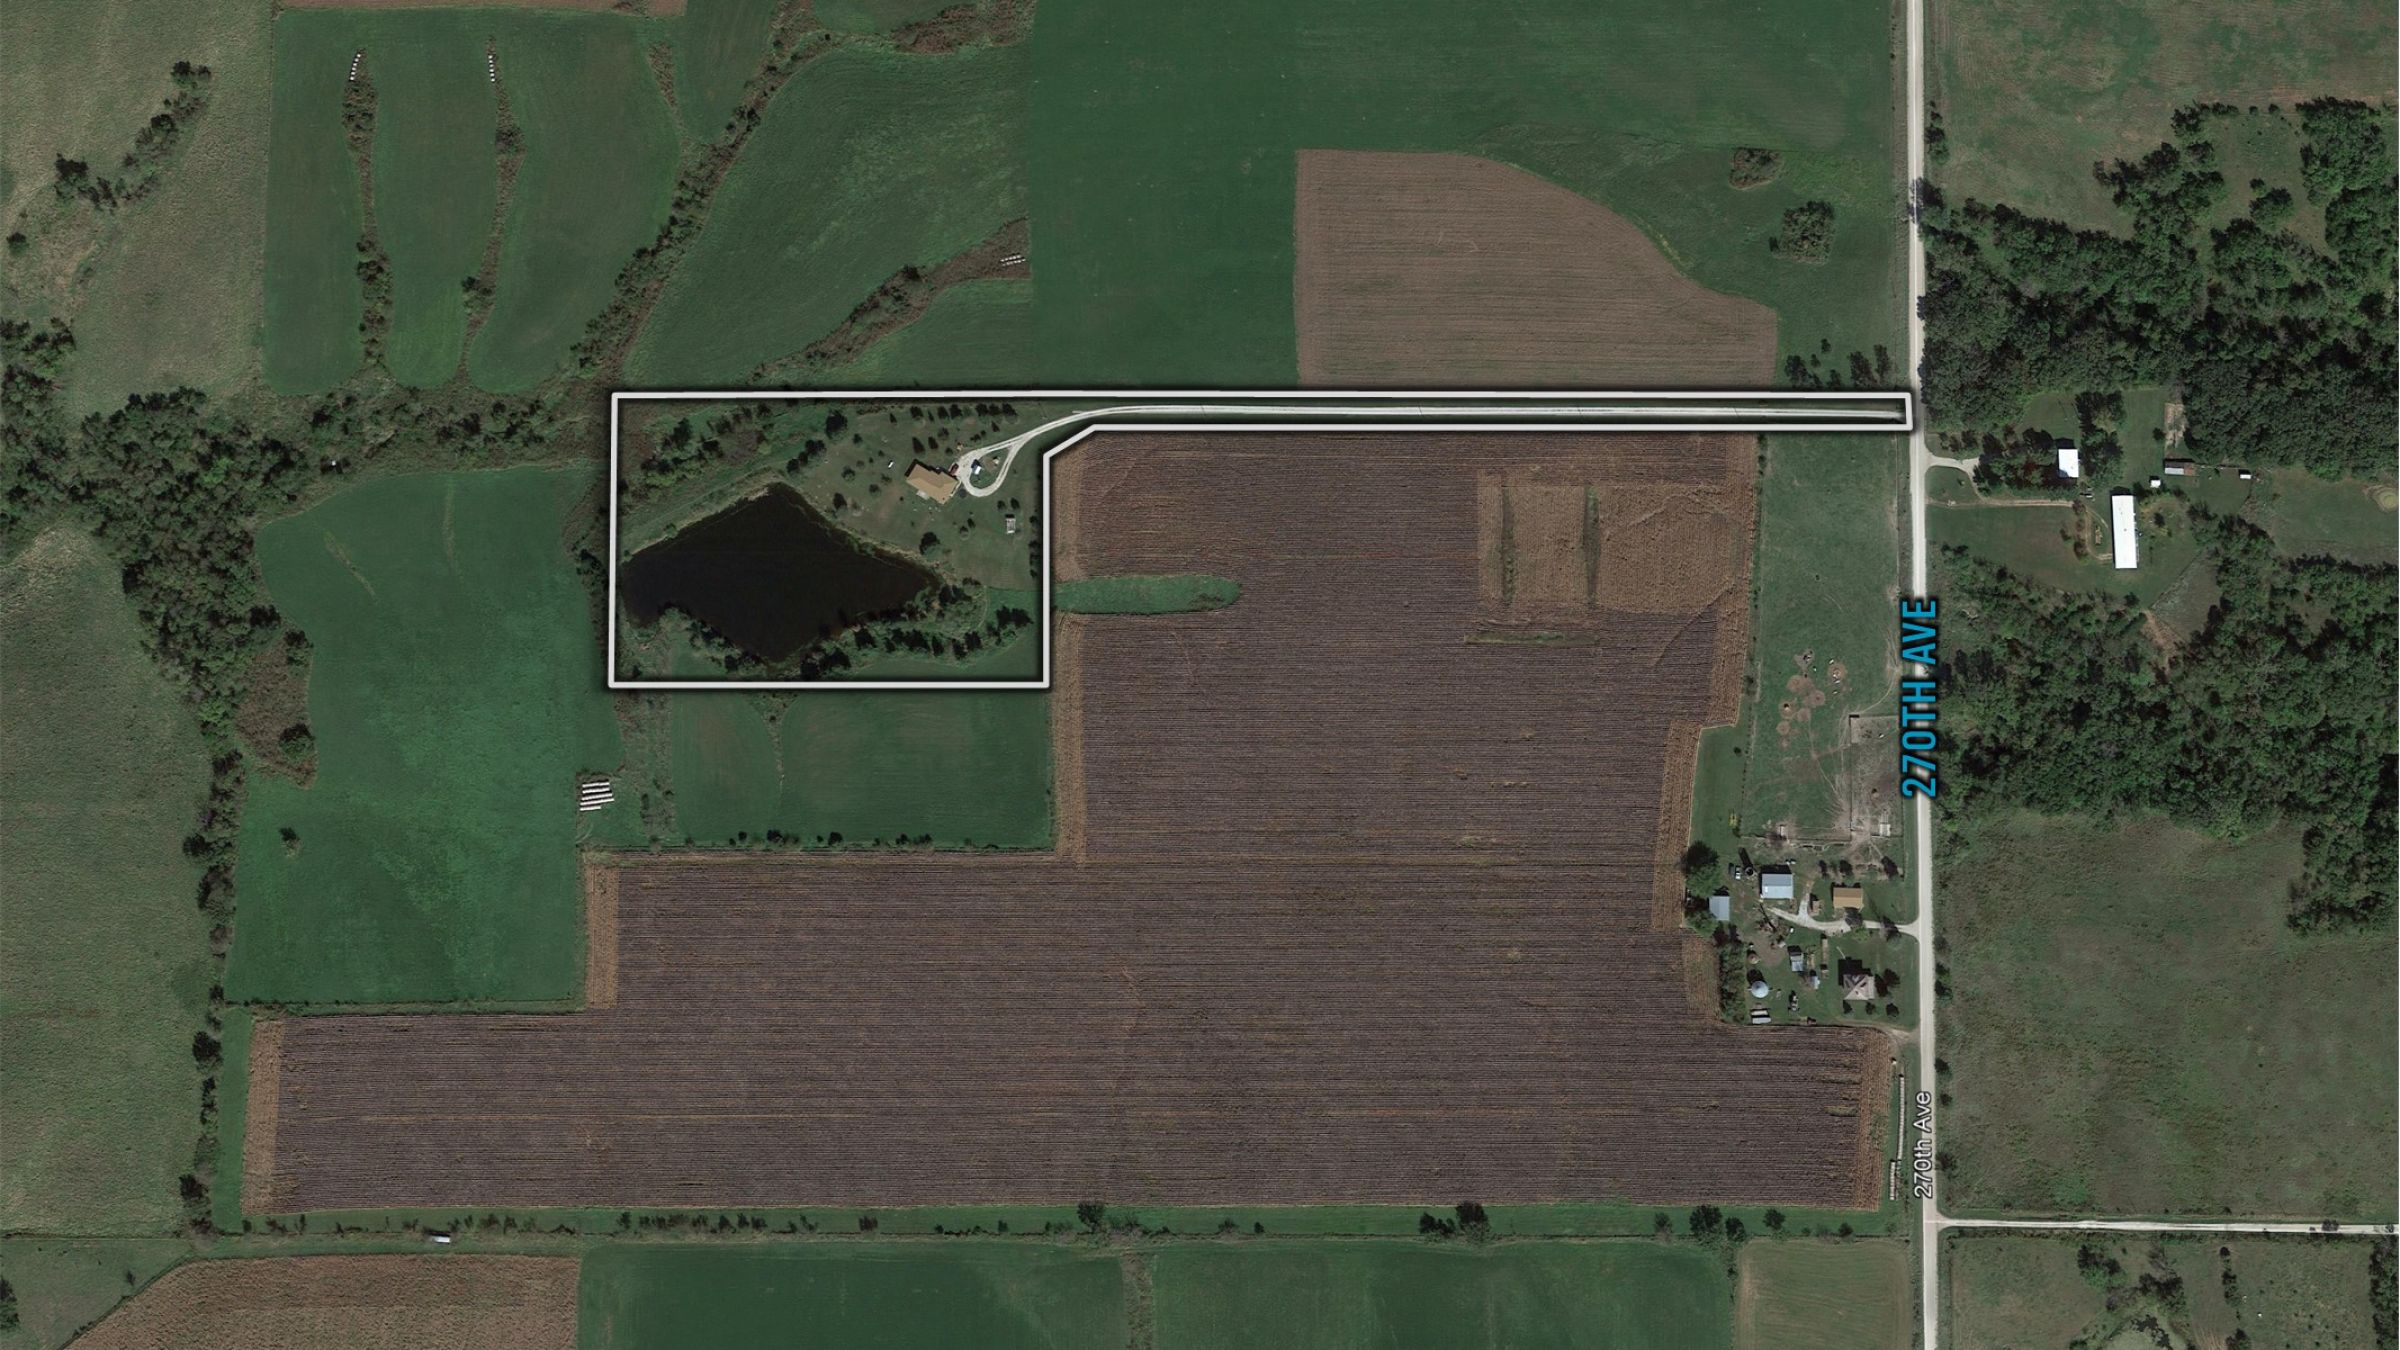 residential-lucas-county-iowa-9-acres-listing-number-15618-0-2021-06-29-191303.jpg